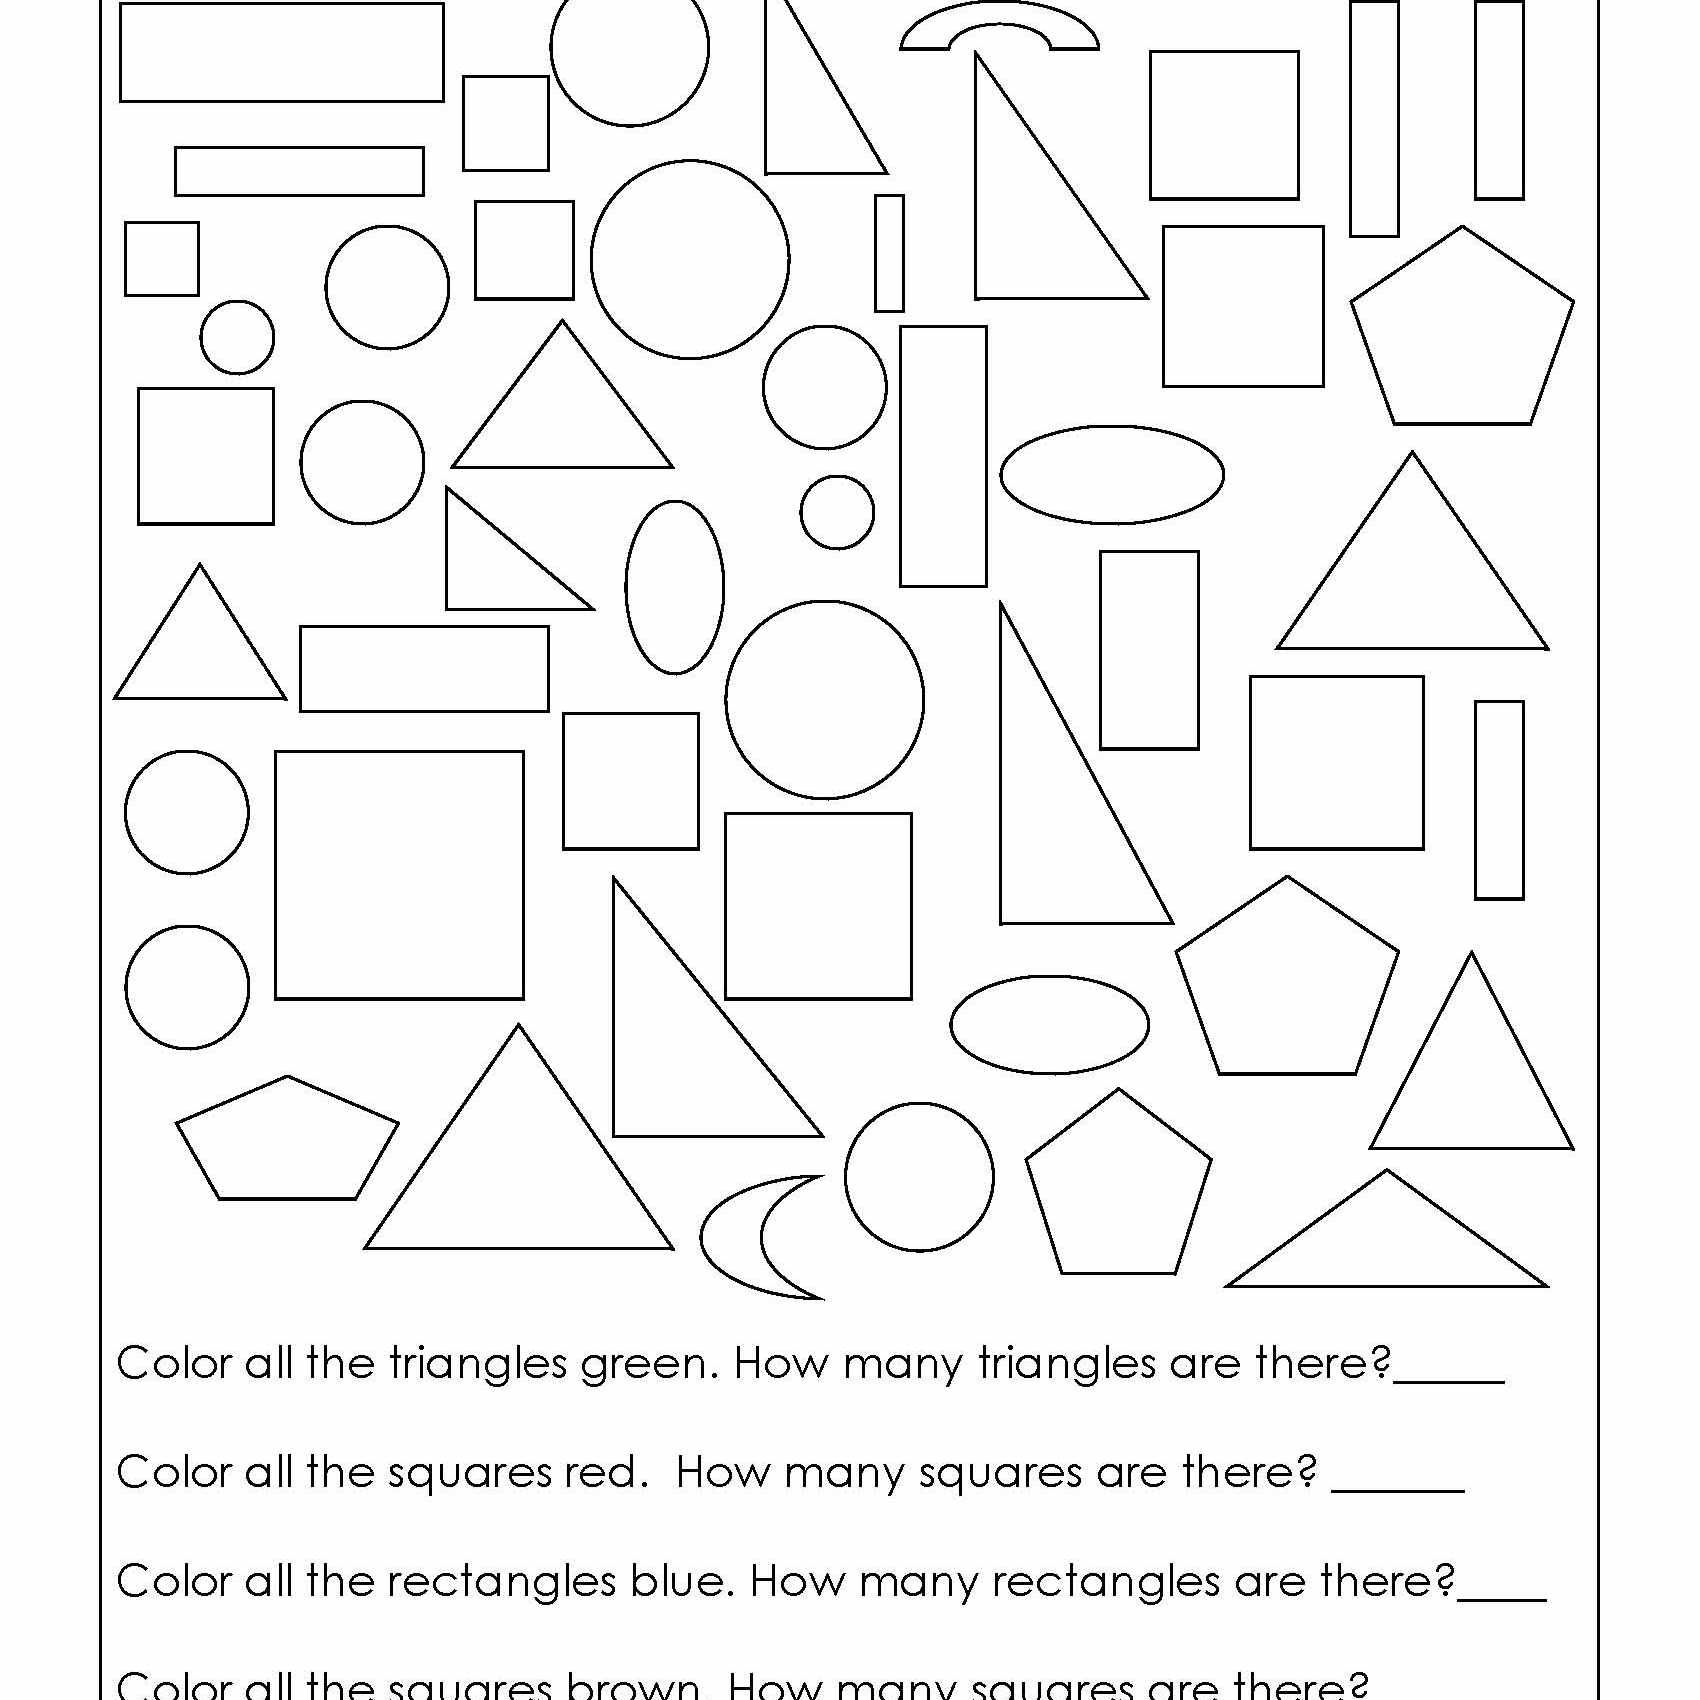 Printable Worksheet For 2nd Grade Social Stu S